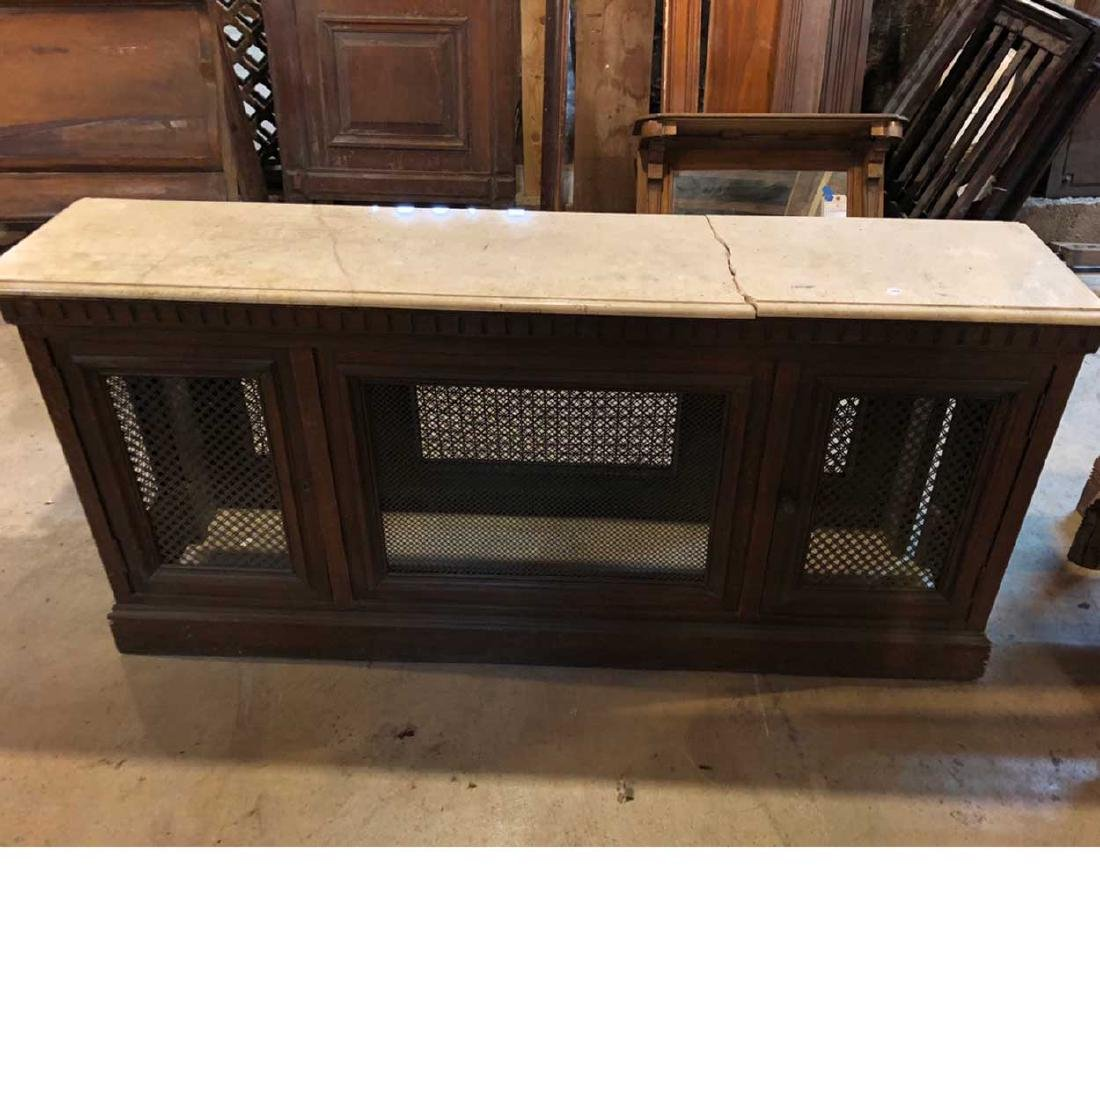 Victorian Marble Top Paneled Radiator Cover - 2